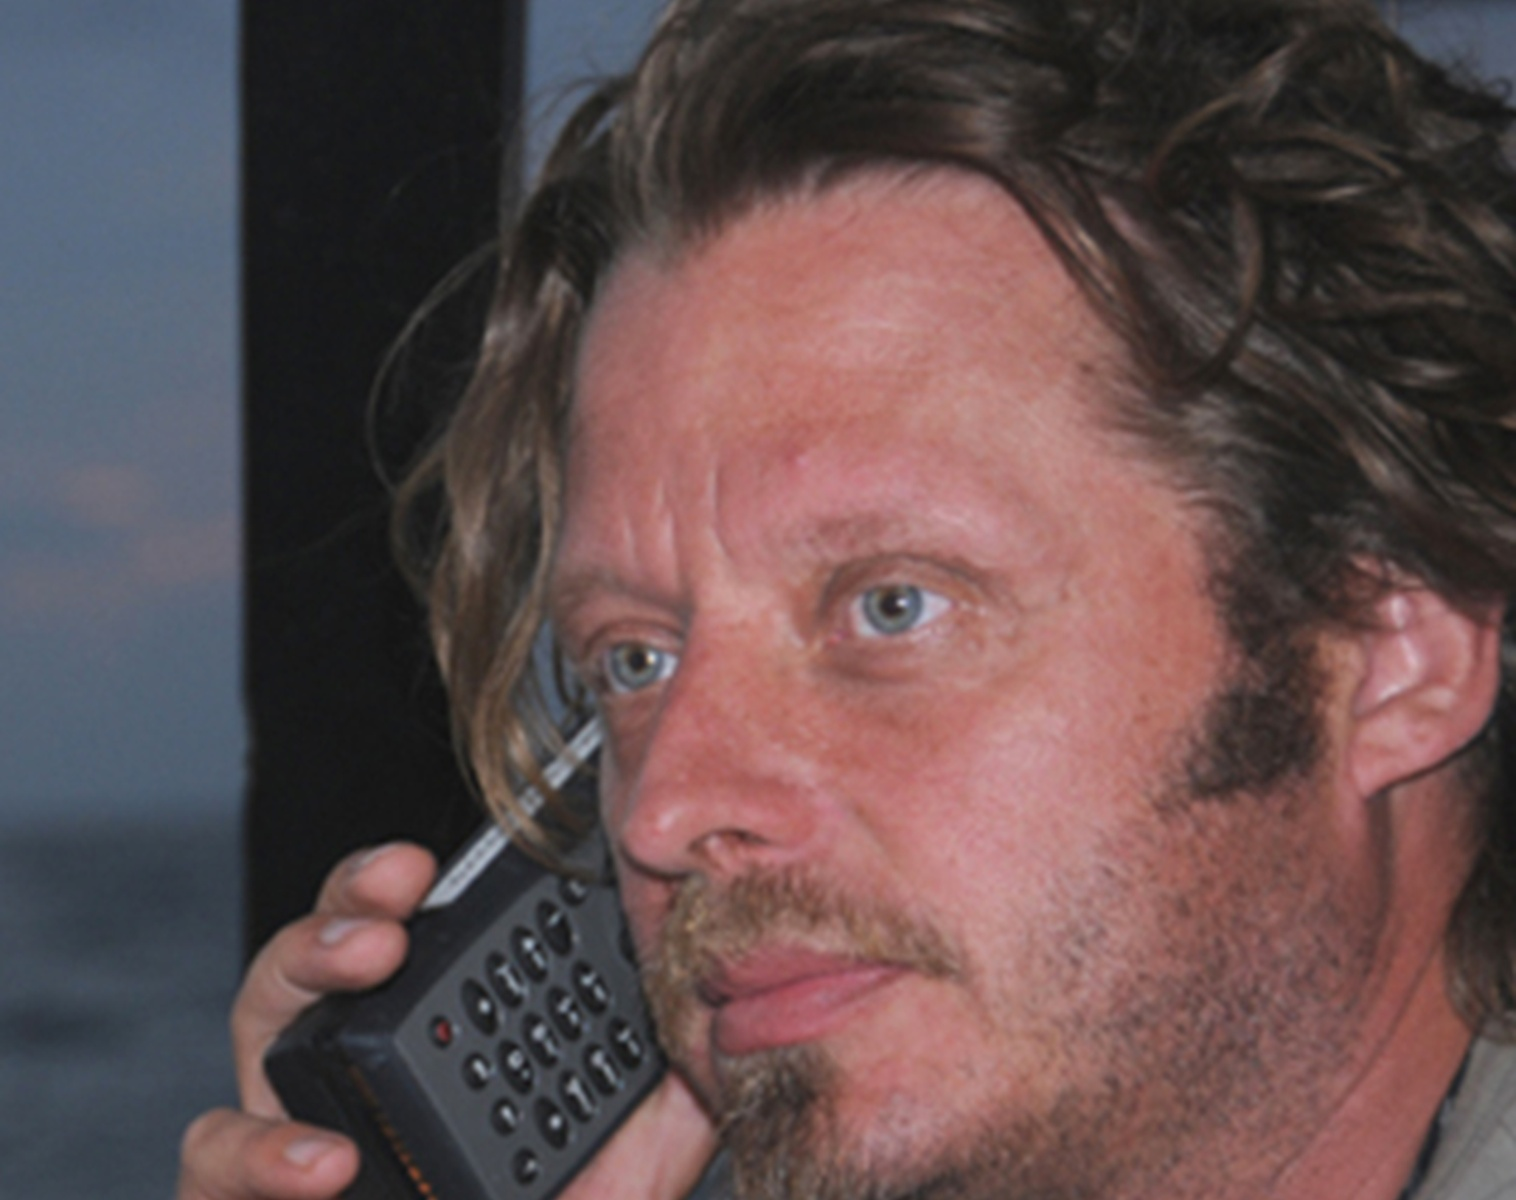 Charley Boorman - By Any Means | BGAN EXPLORER 500 & Iridium 9505A